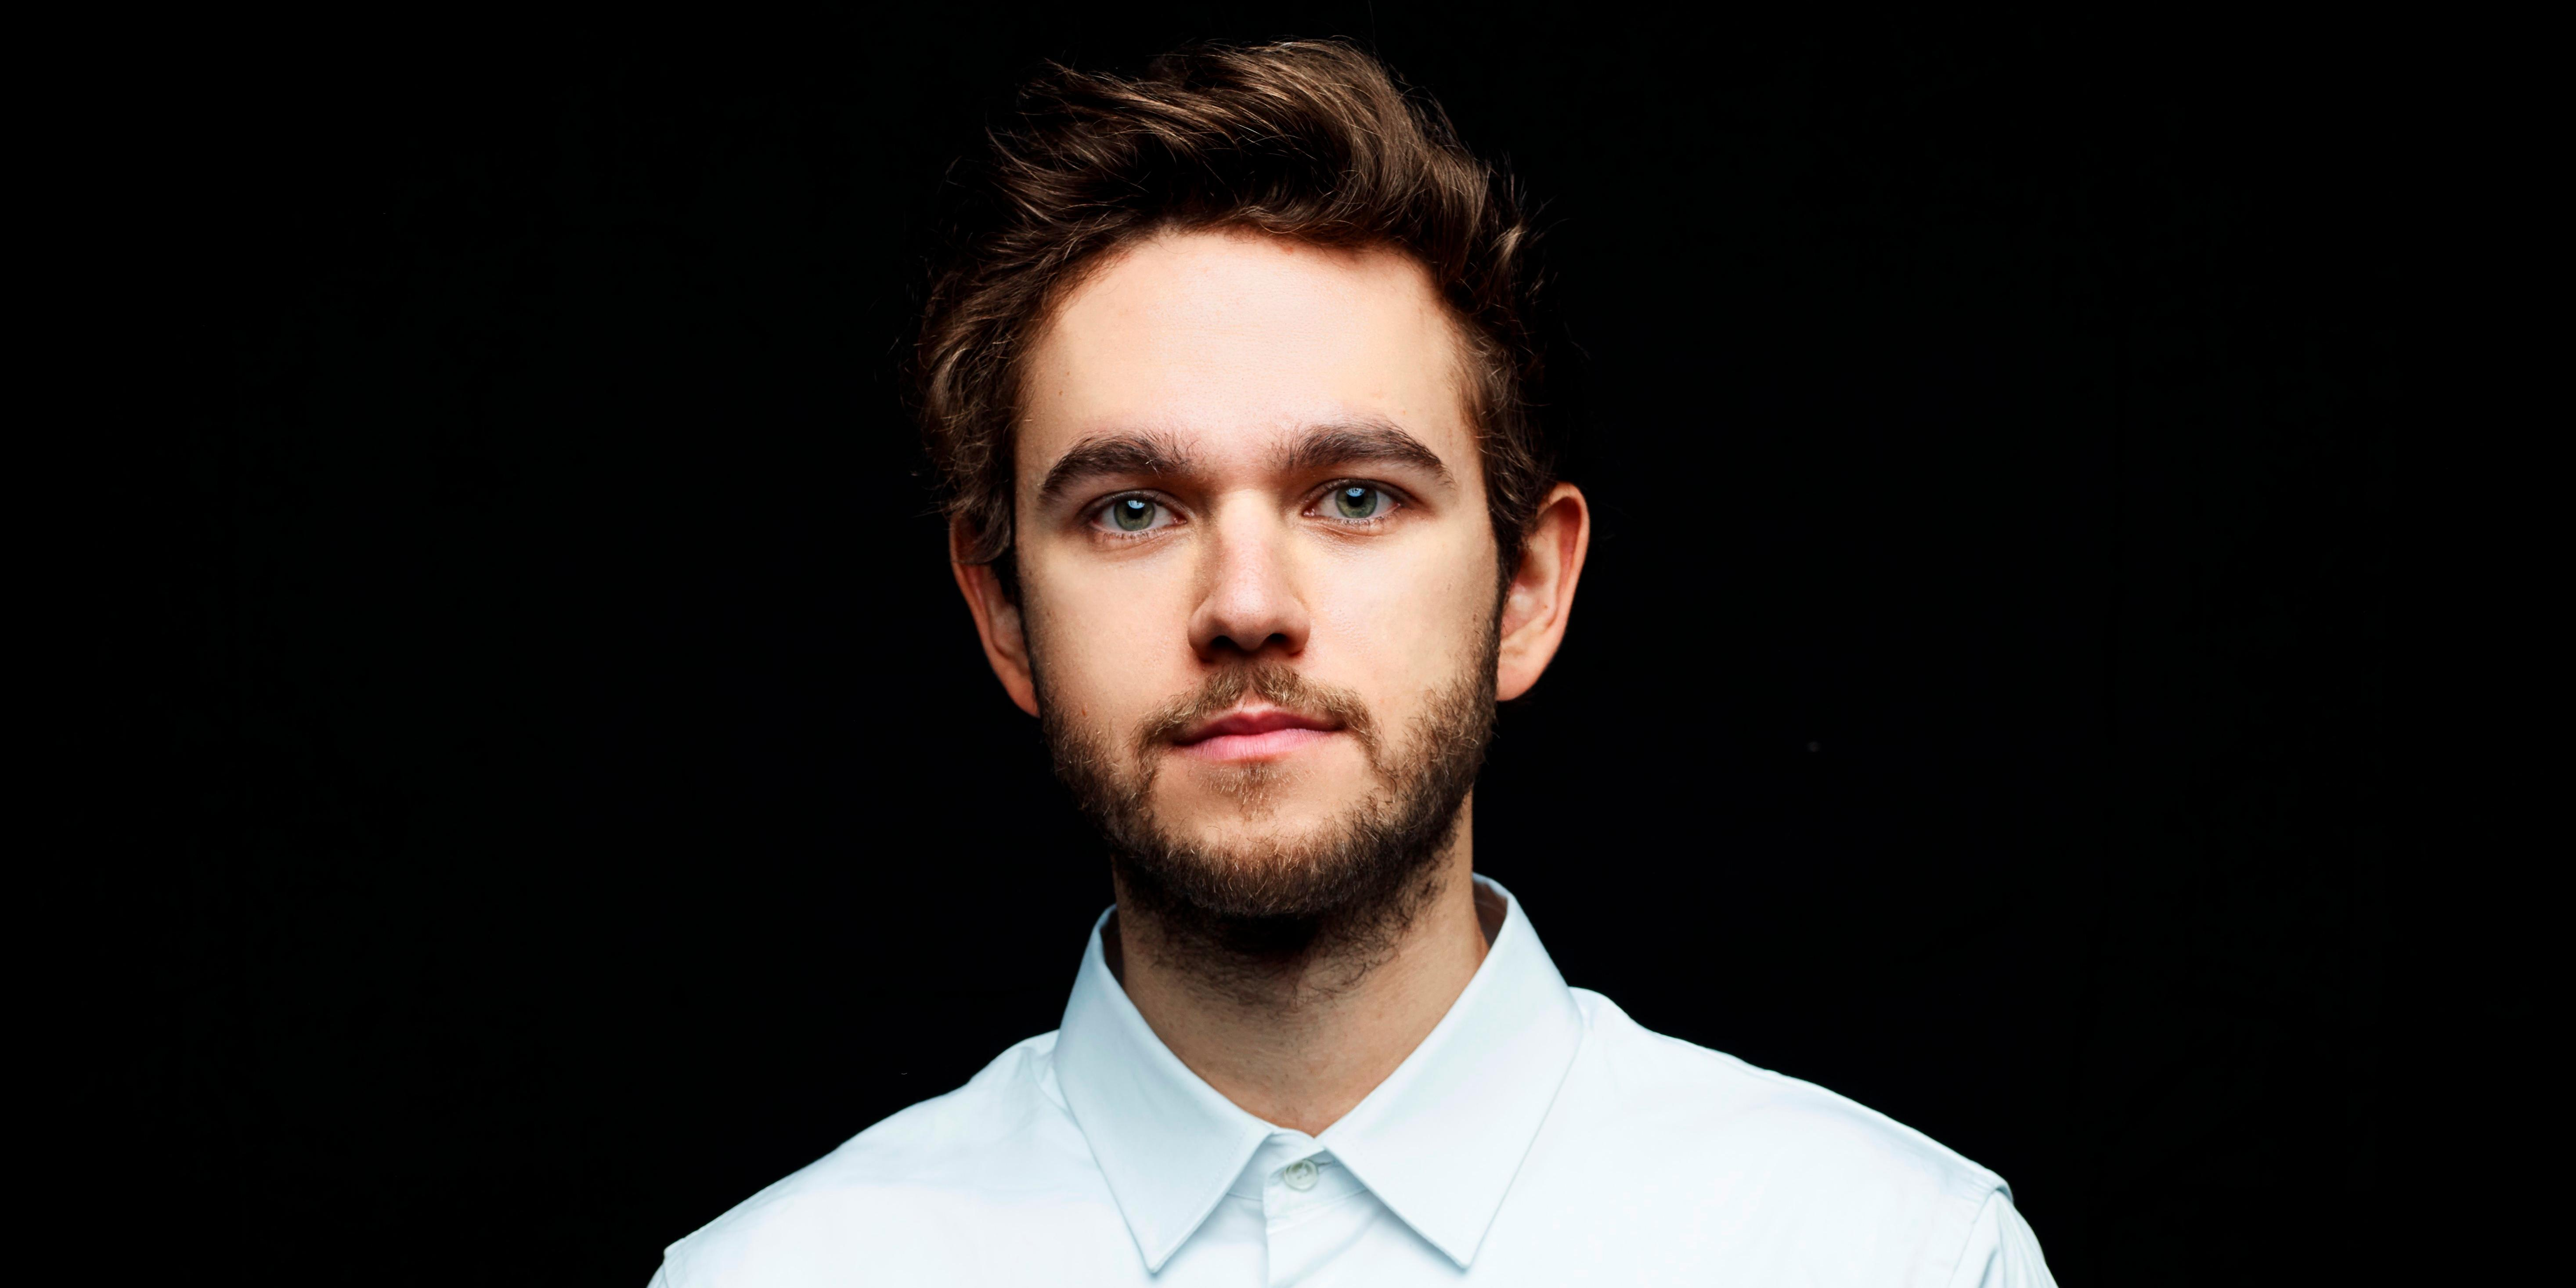 2048x2048 Anthem Ipad Air Hd 4k Wallpapers Images: 2048x2048 Zedd Ipad Air HD 4k Wallpapers, Images